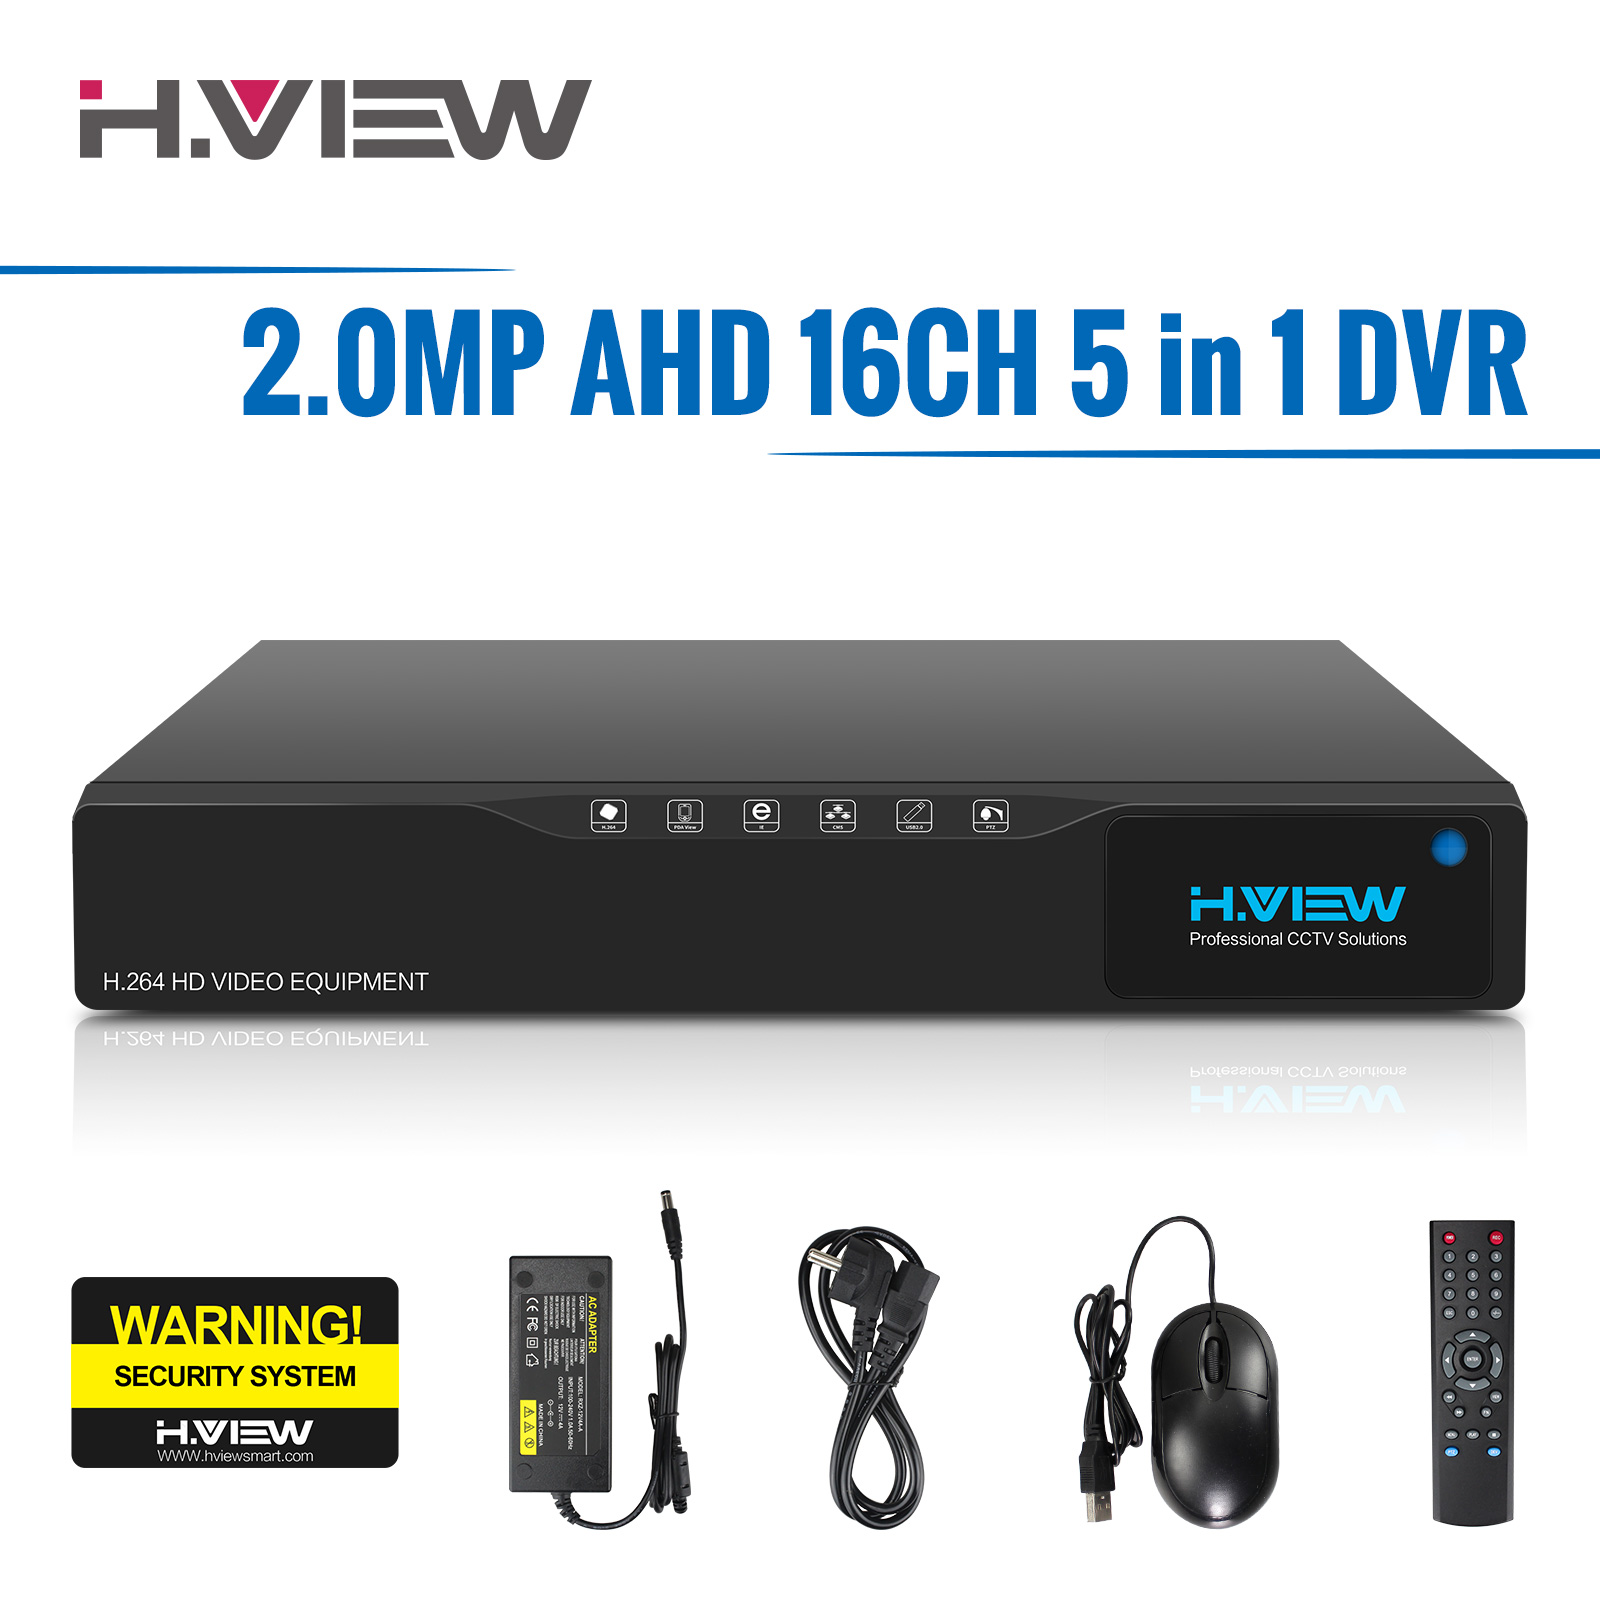 16 CH 1080N CCTV DVR Recorder H.264 HDMI Network Digital Video Recorder Suit Anolg AHD CCTV Camera  For Home Security System 16 ch 1080n cctv dvr recorder h 264 hdmi network digital video recorder suit anolg ahd cctv camera for home security system